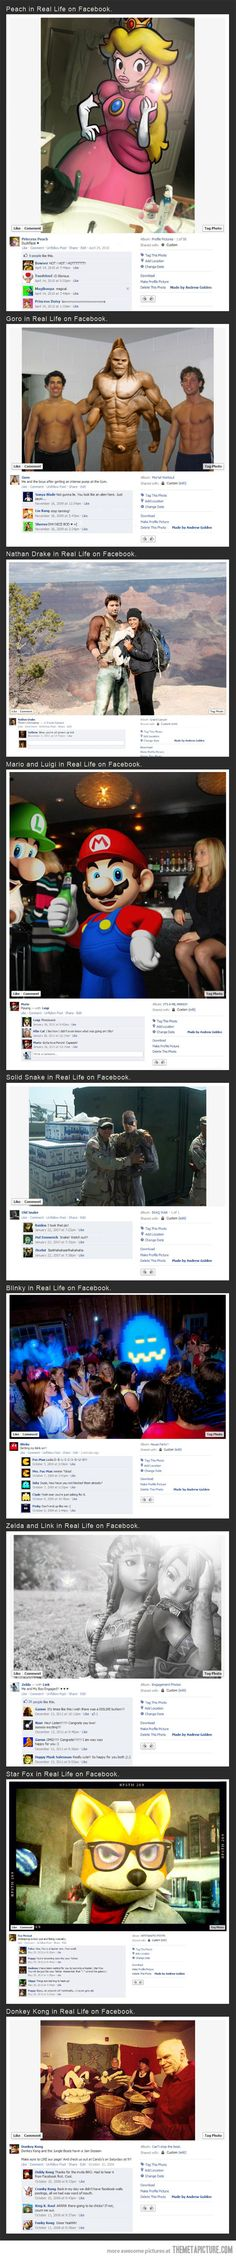 Video game characters in real life on Facebook  I like the Zelda and Link one the best